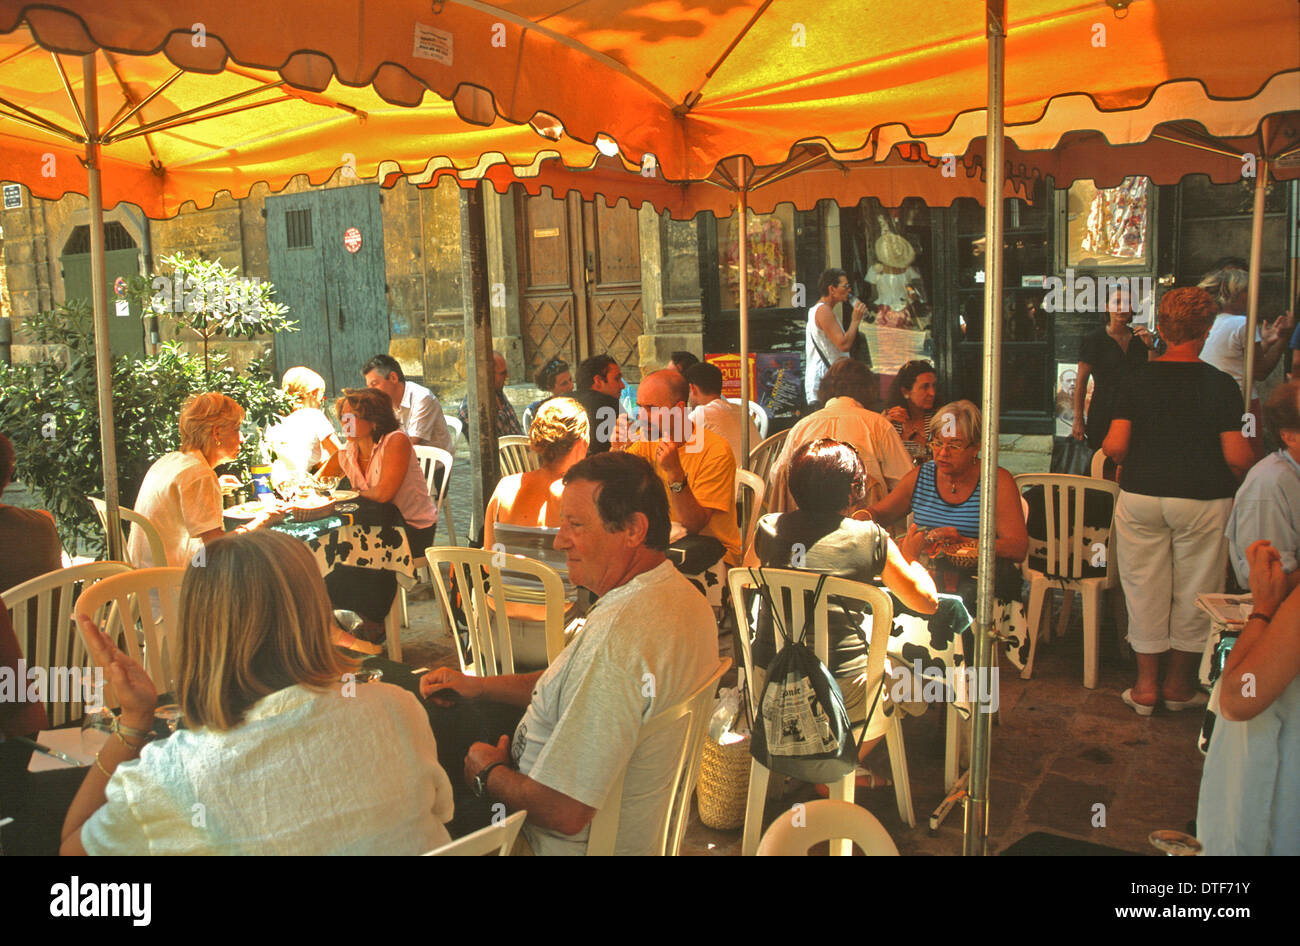 AIX EN PROVENCE FRANCE A BUSY RESTAURANT AT LUNCHTIME - Stock Image